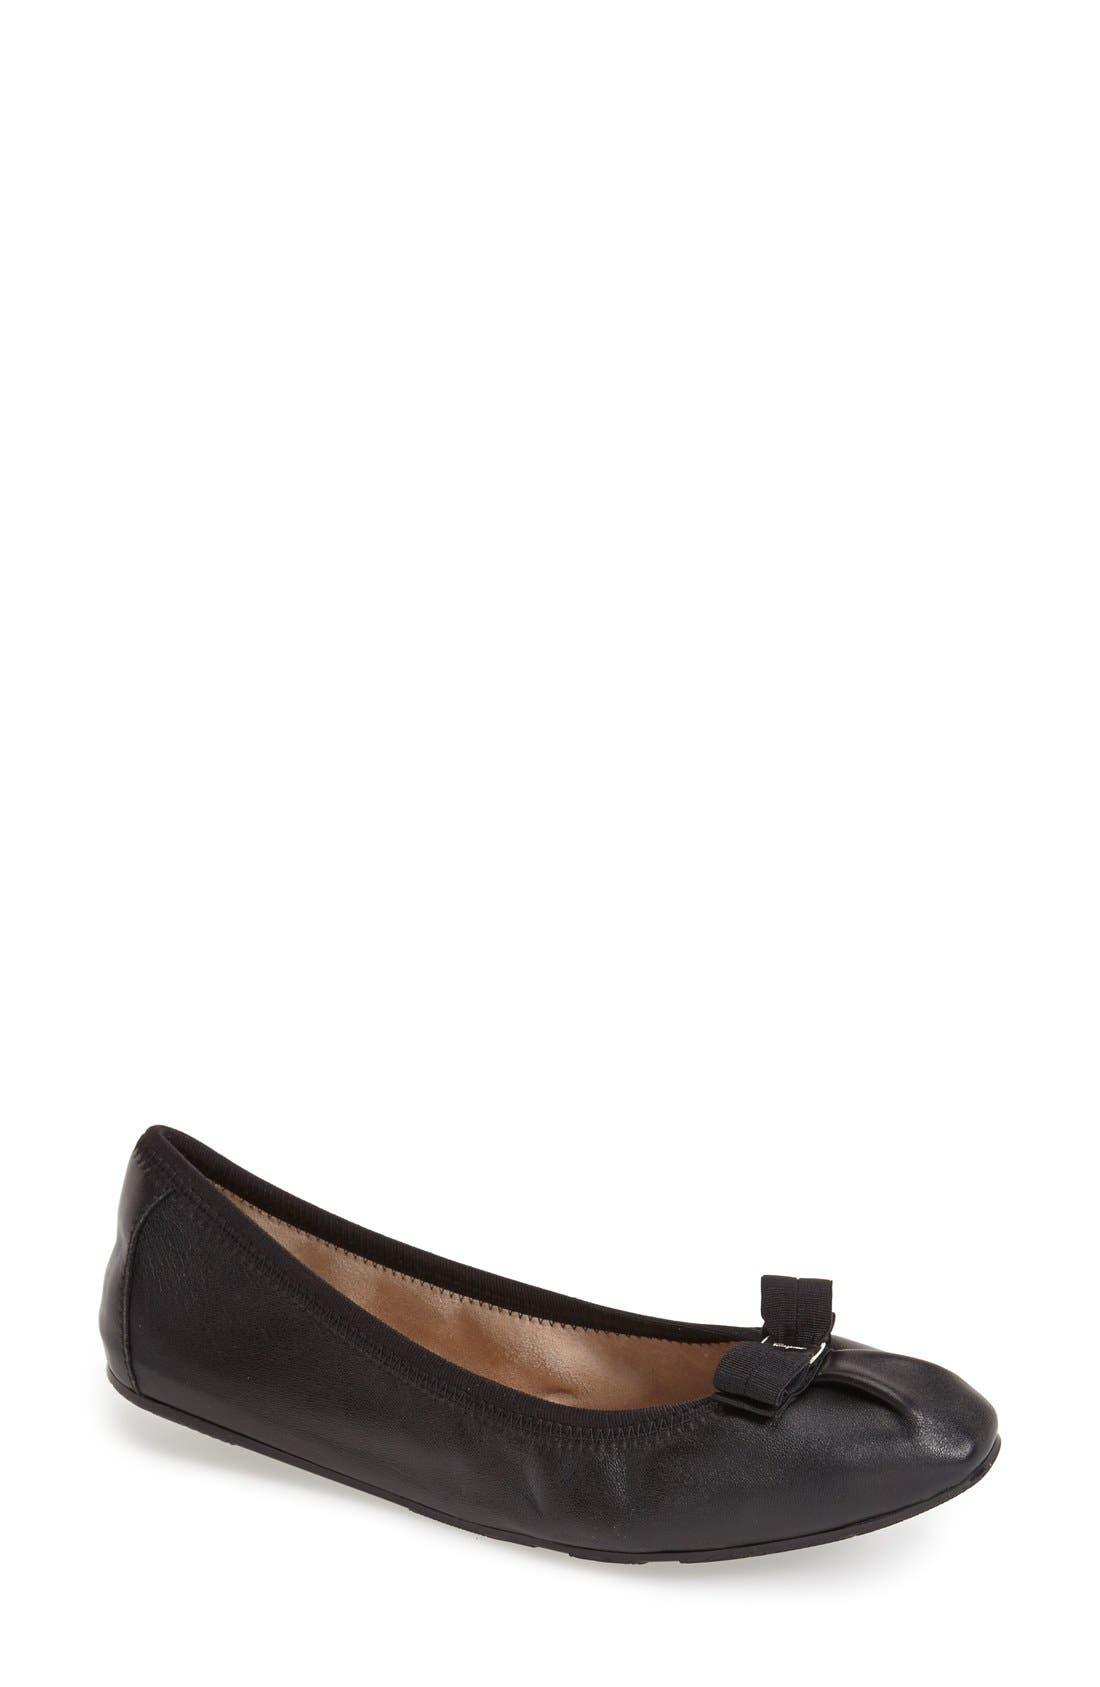 Alternate Image 1 Selected - Salvatore Ferragamo 'My Joy' Flat (Women)